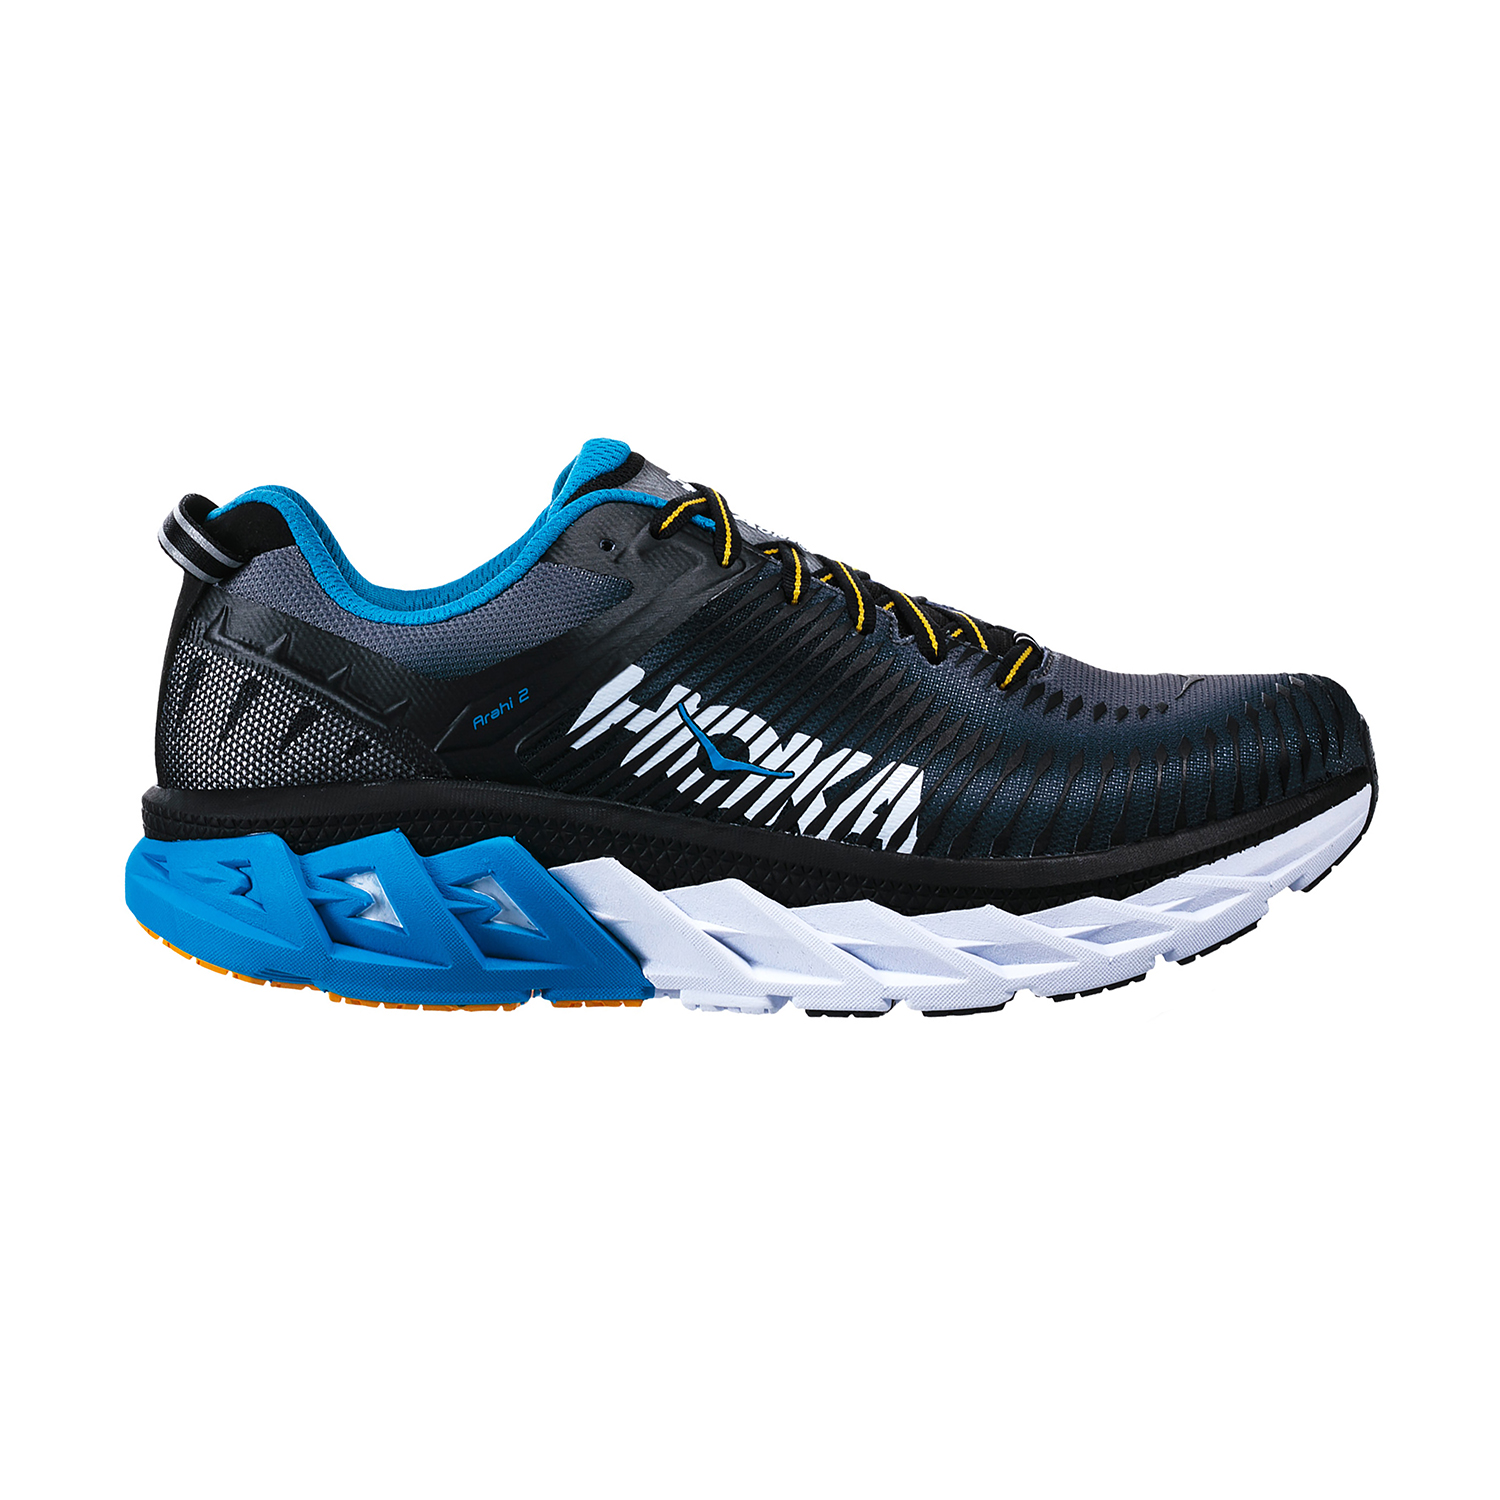 mizuno mens running shoes size 9 years old virgin jeans